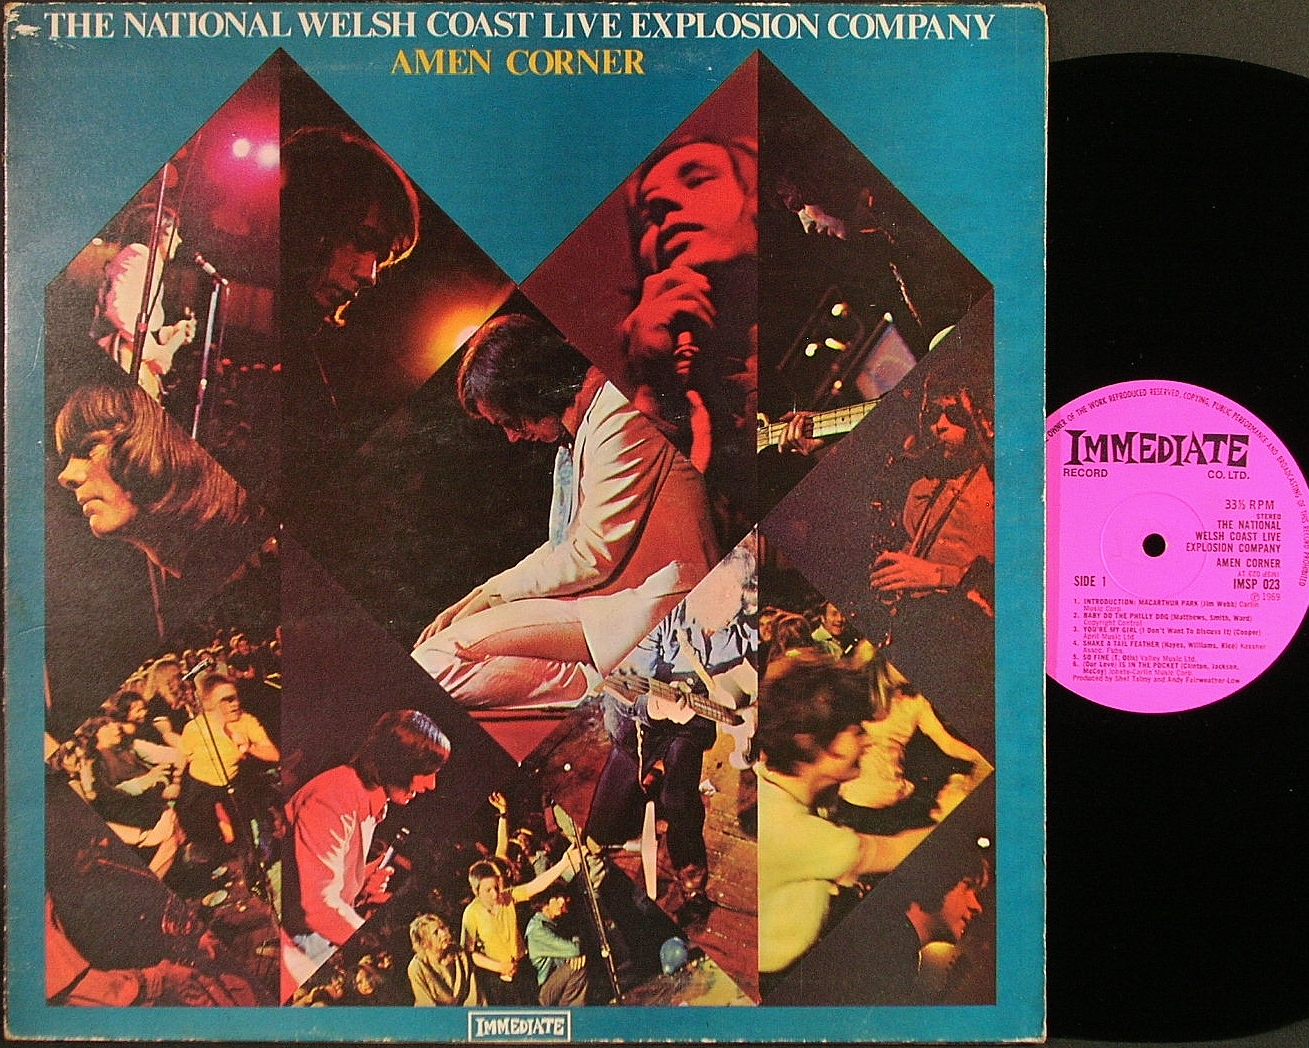 Amen Corner エーメン・コーナー / The National Welsh Coast Live Explosion Company